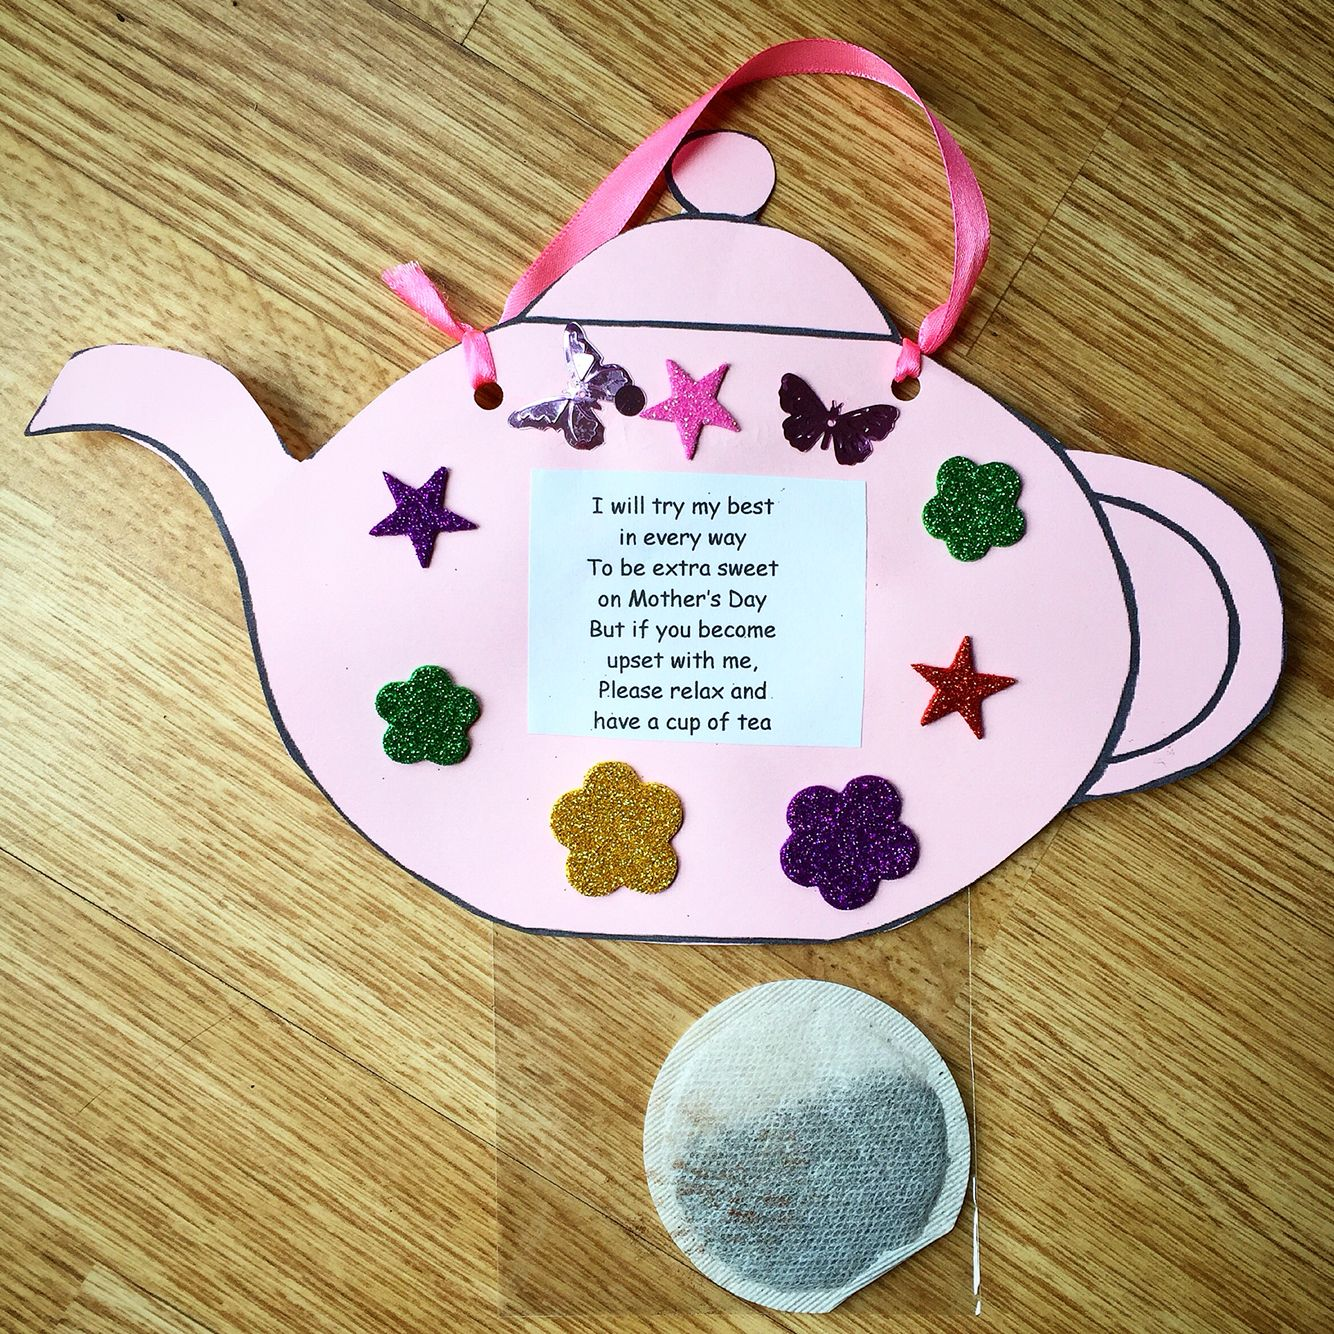 Nice Idea For Mother's Day. Tea Pot Complete With Tea Bag